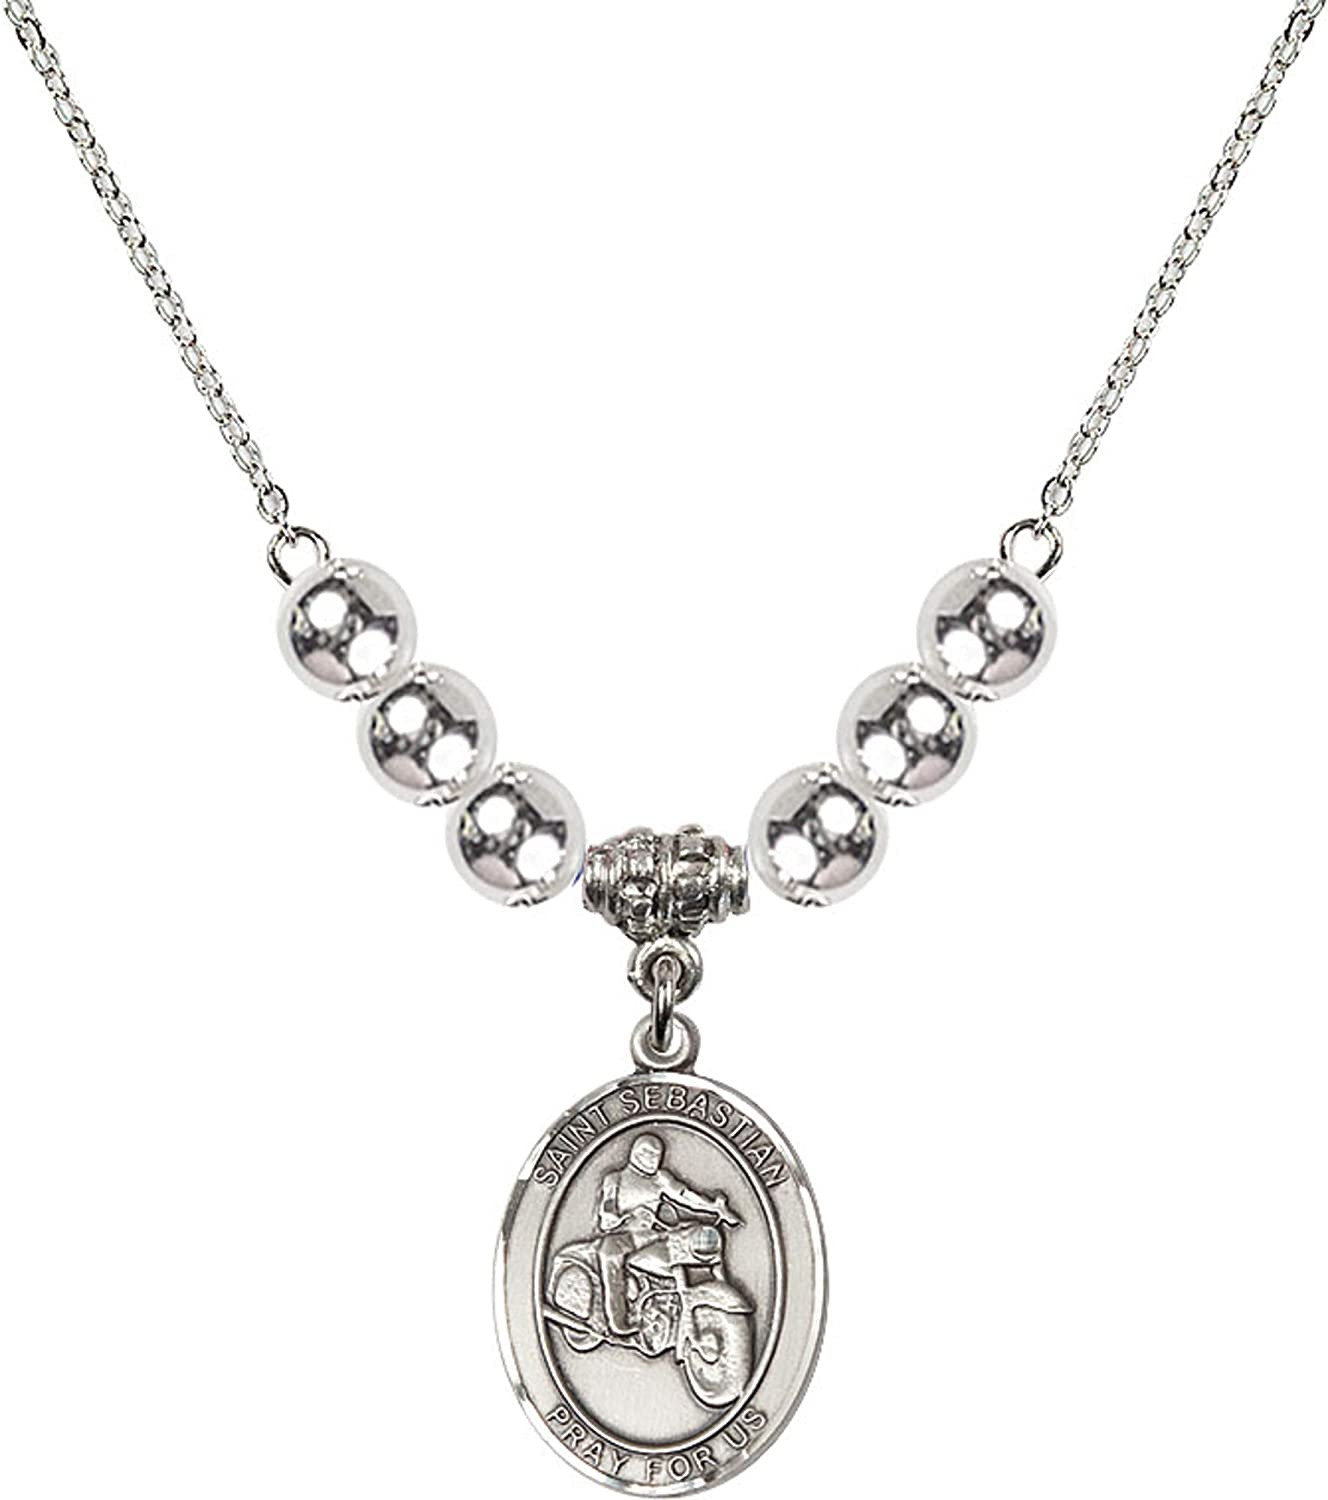 Bonyak Jewelry 18 Inch Rhodium Plated Necklace w// 6mm Sterling Silver Beads and Saint Sebastian//Motorcycle Charm